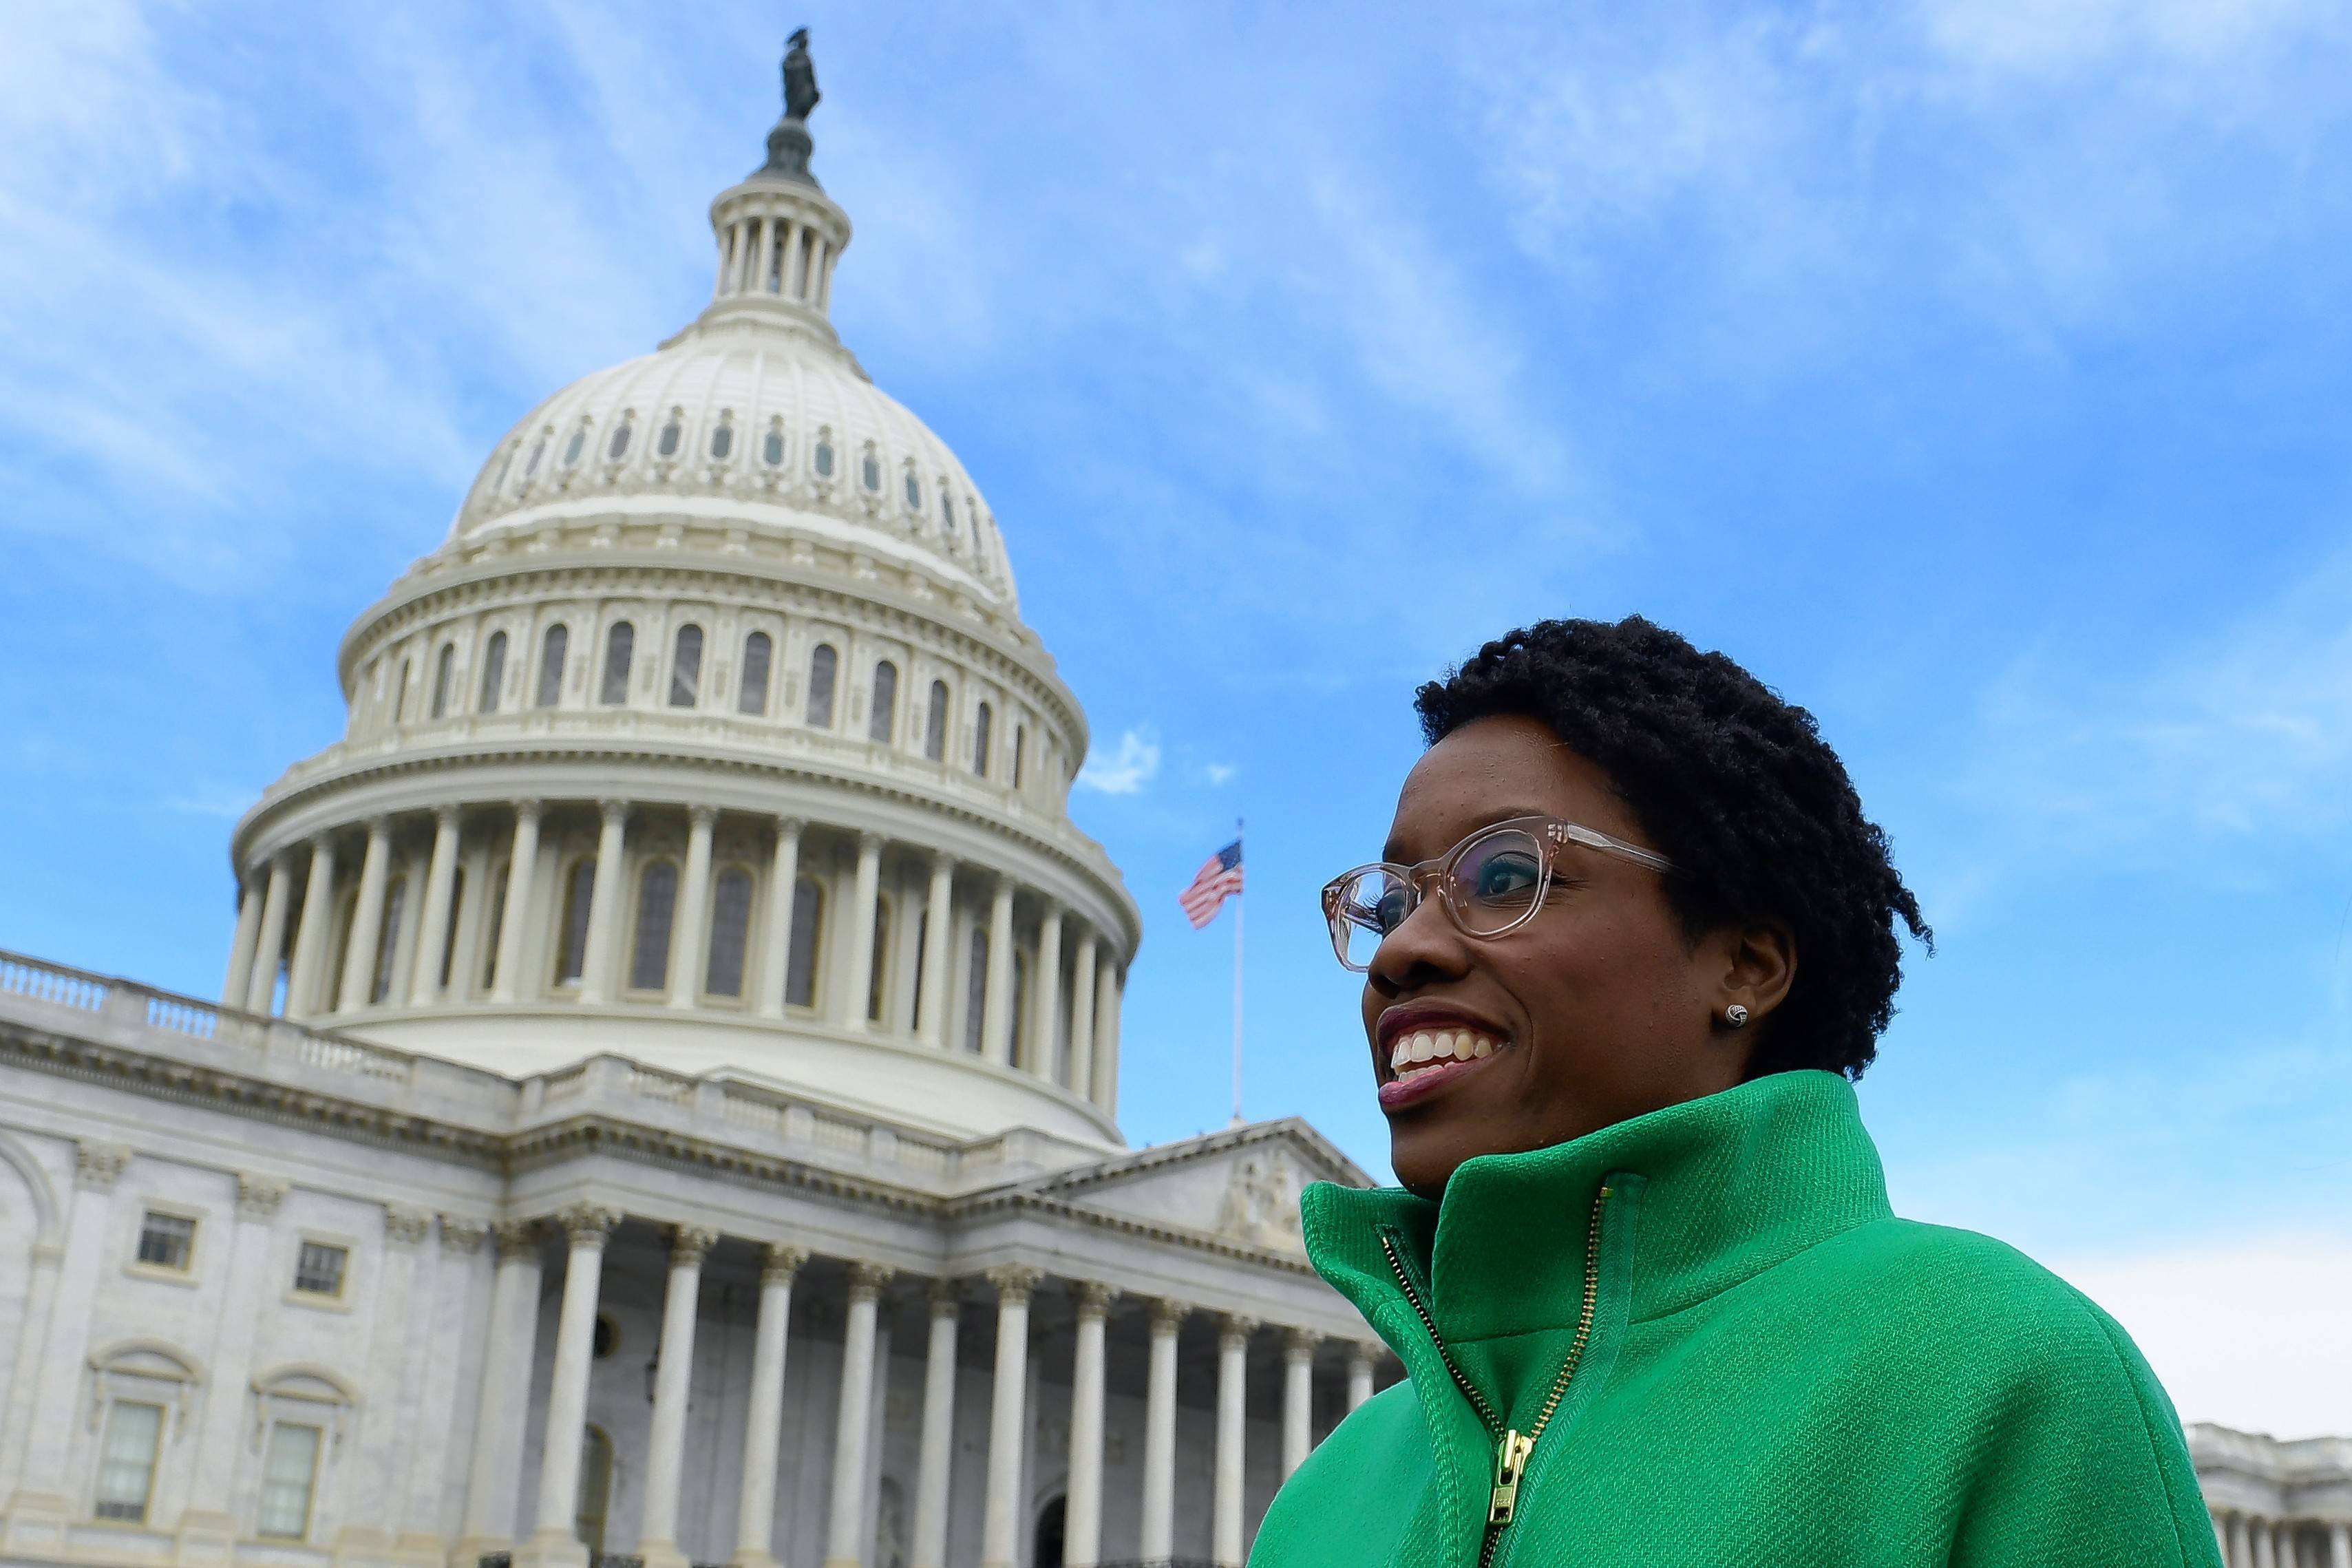 Rep.-elect Lauren Underwood walks outside following a photo opportunity on Capitol Hill in Washington last month.